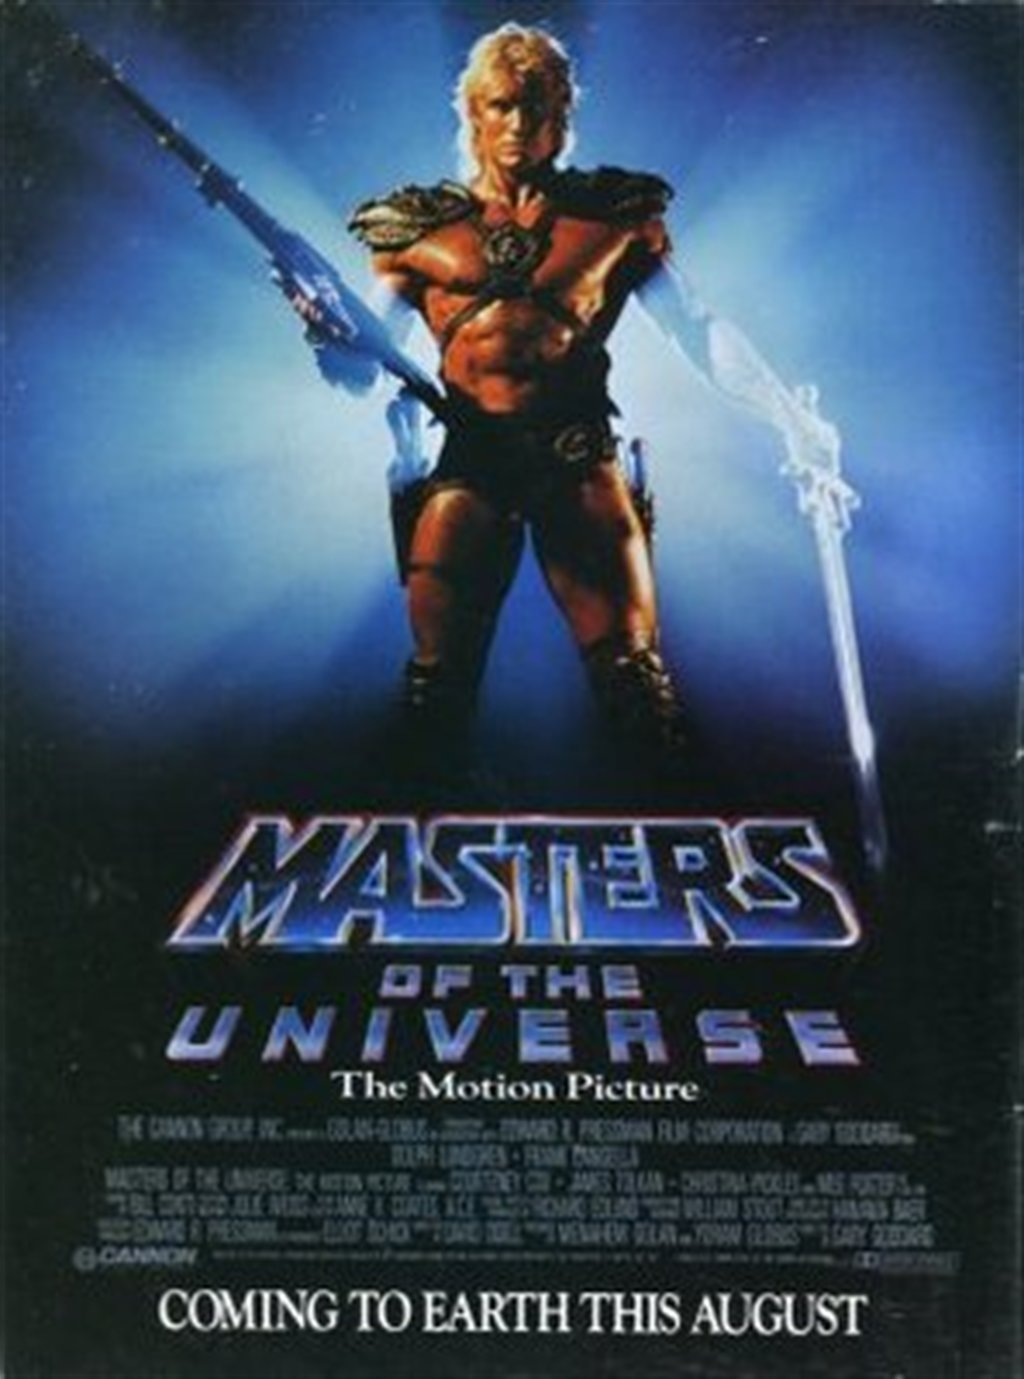 He Man Master of the Universe